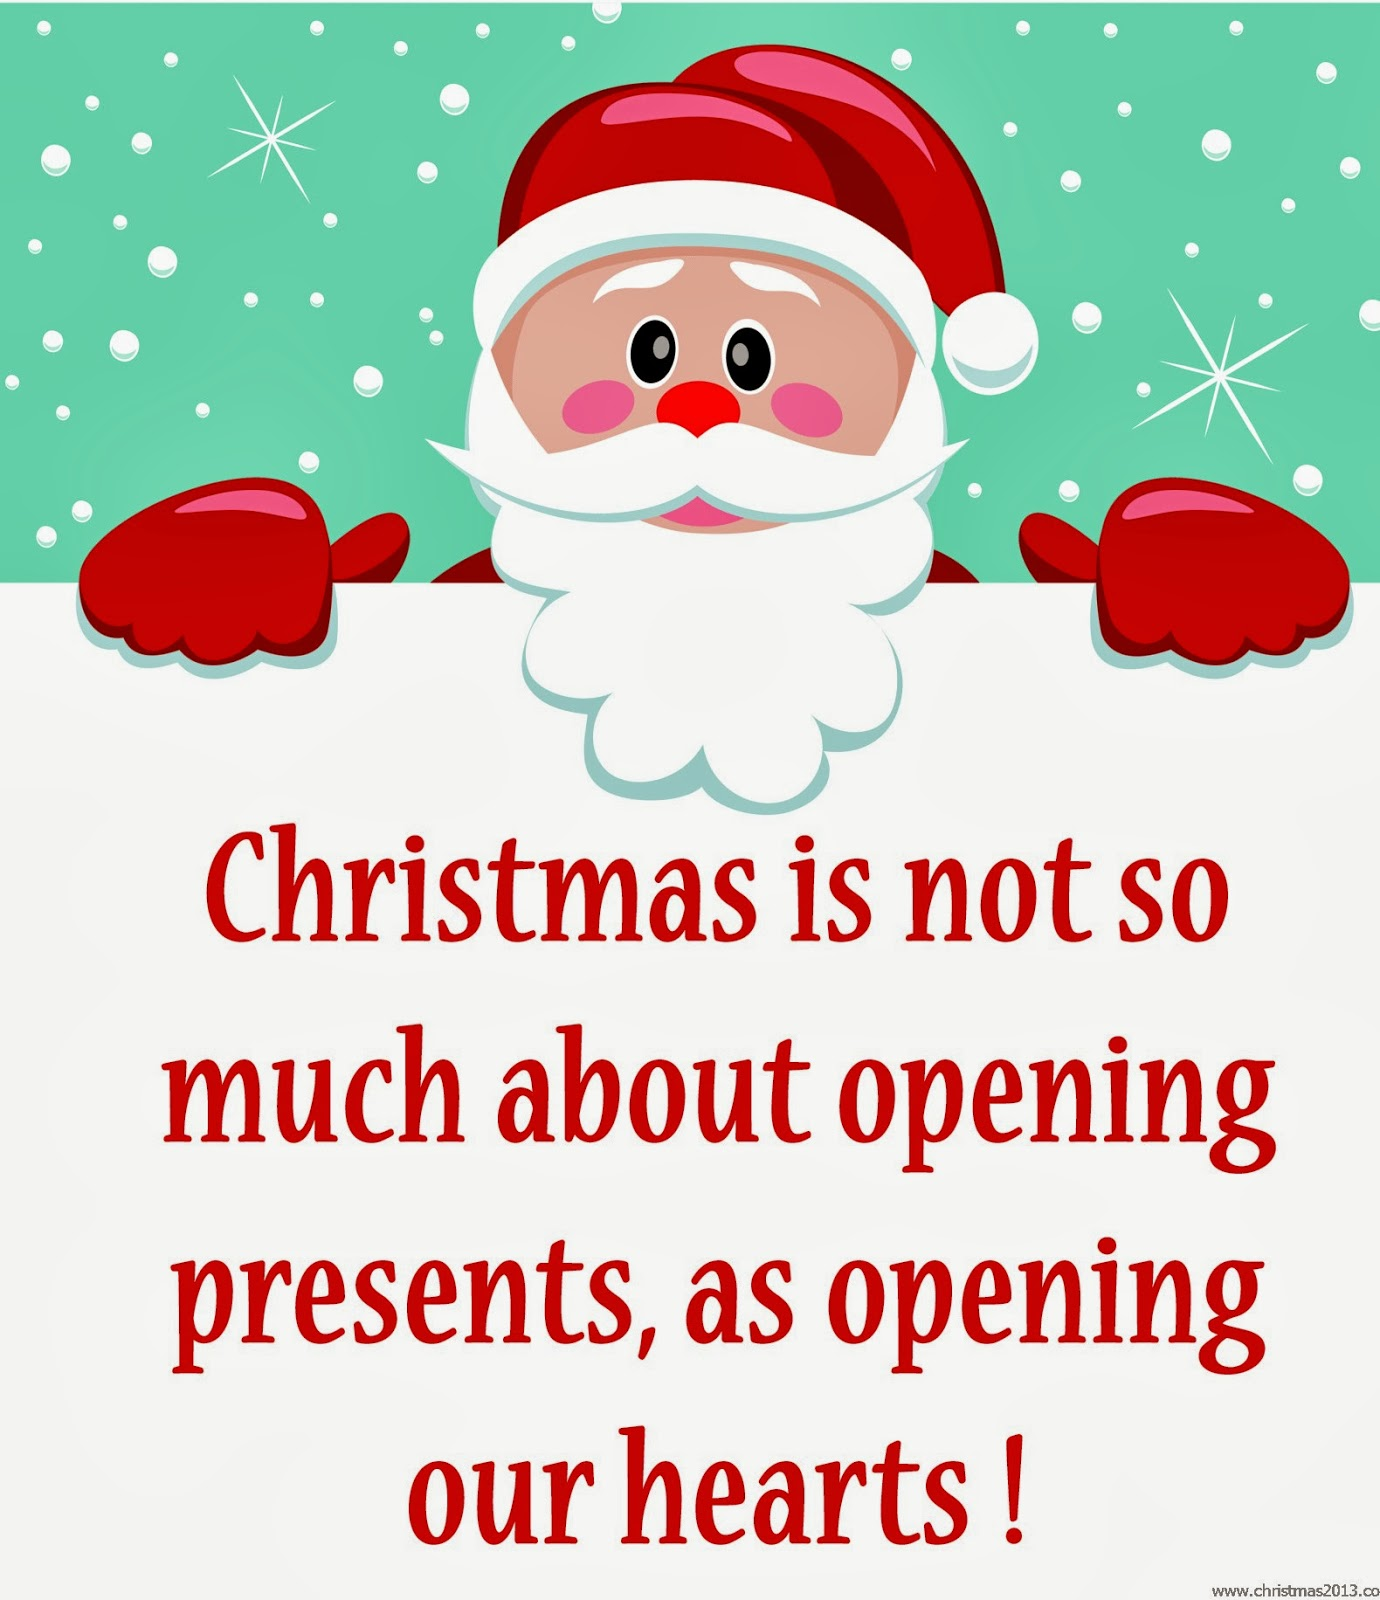 Christmas Quotes About Friendship Quotes About Friendship Christmas Pictures On Christmas